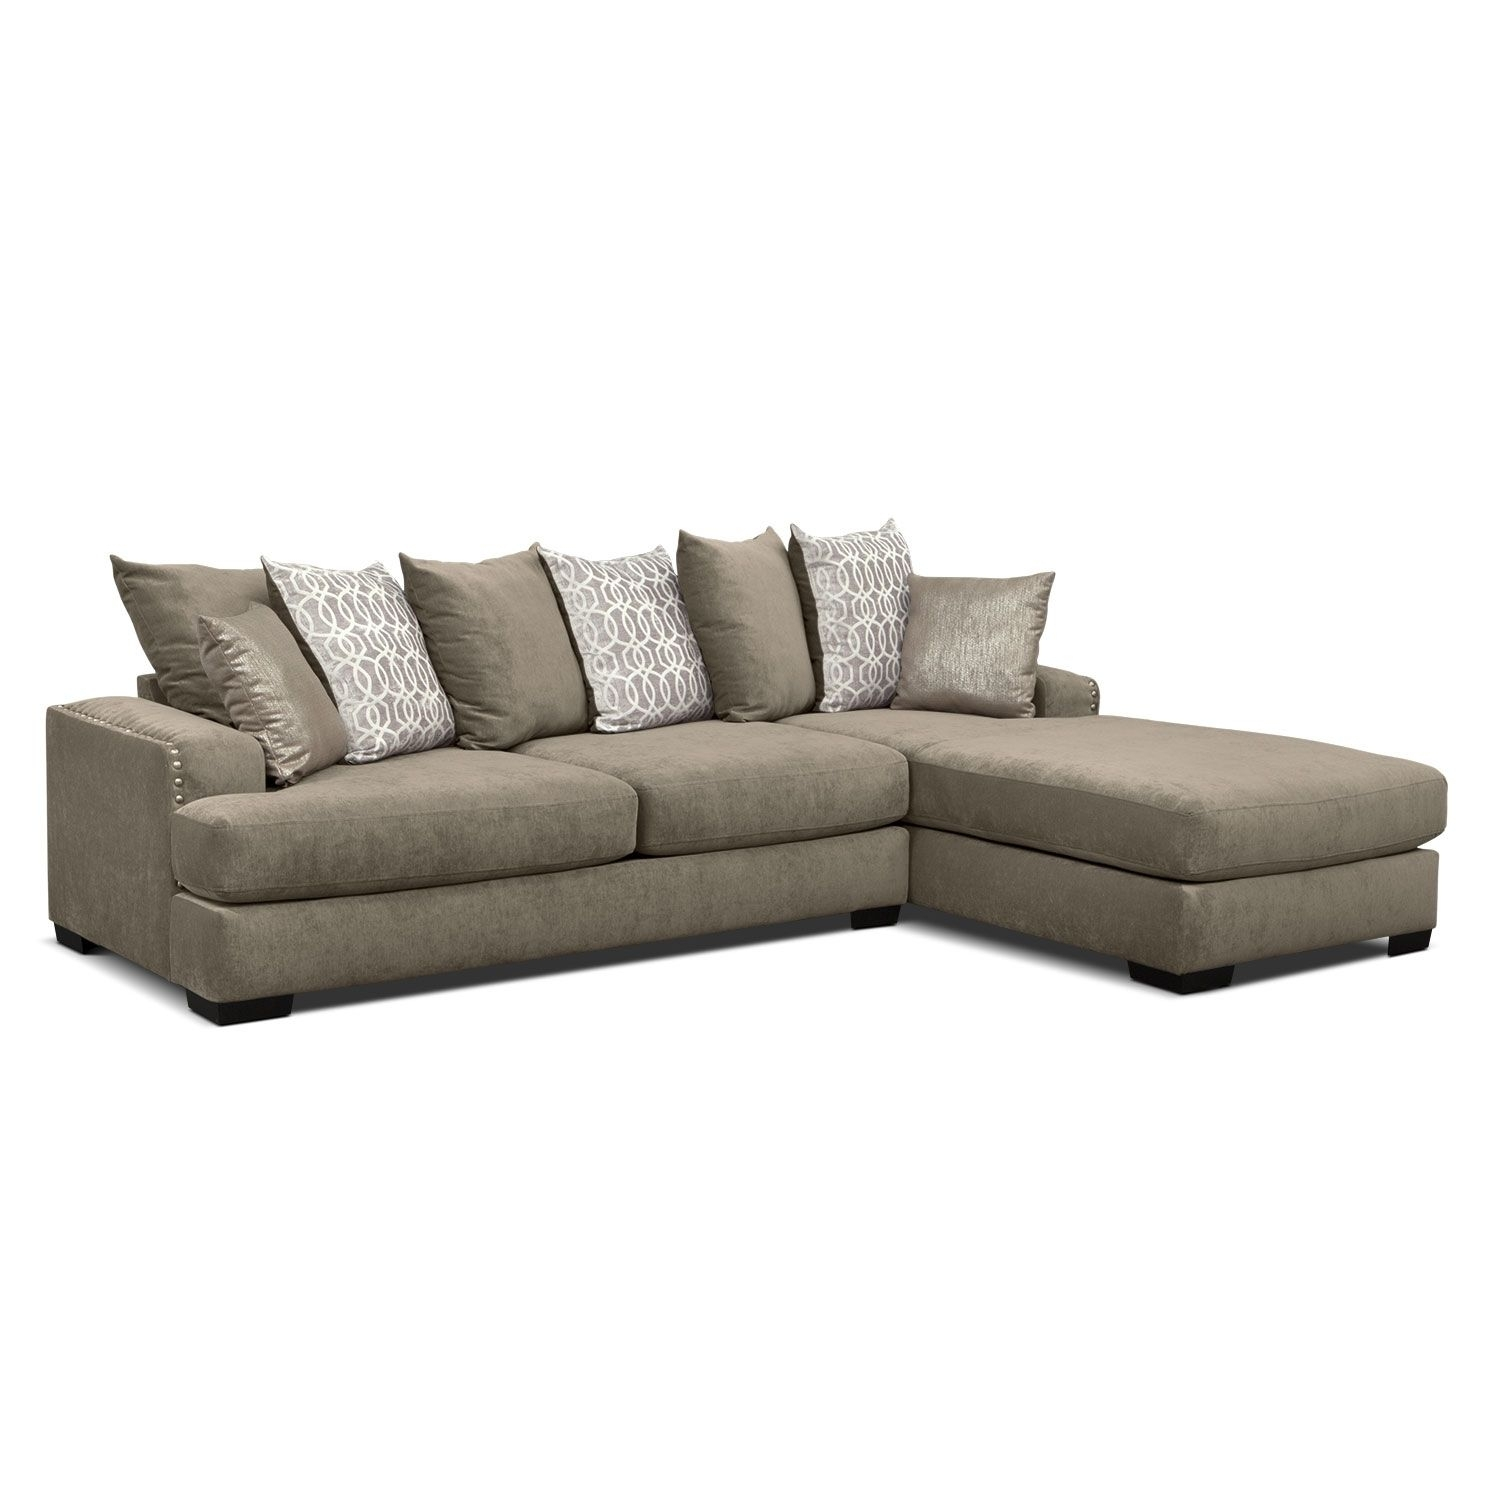 Vcf Sofa Chaise | Baci Living Room Regarding Mcdade Graphite 2 Piece Sectionals With Laf Chaise (Image 23 of 25)